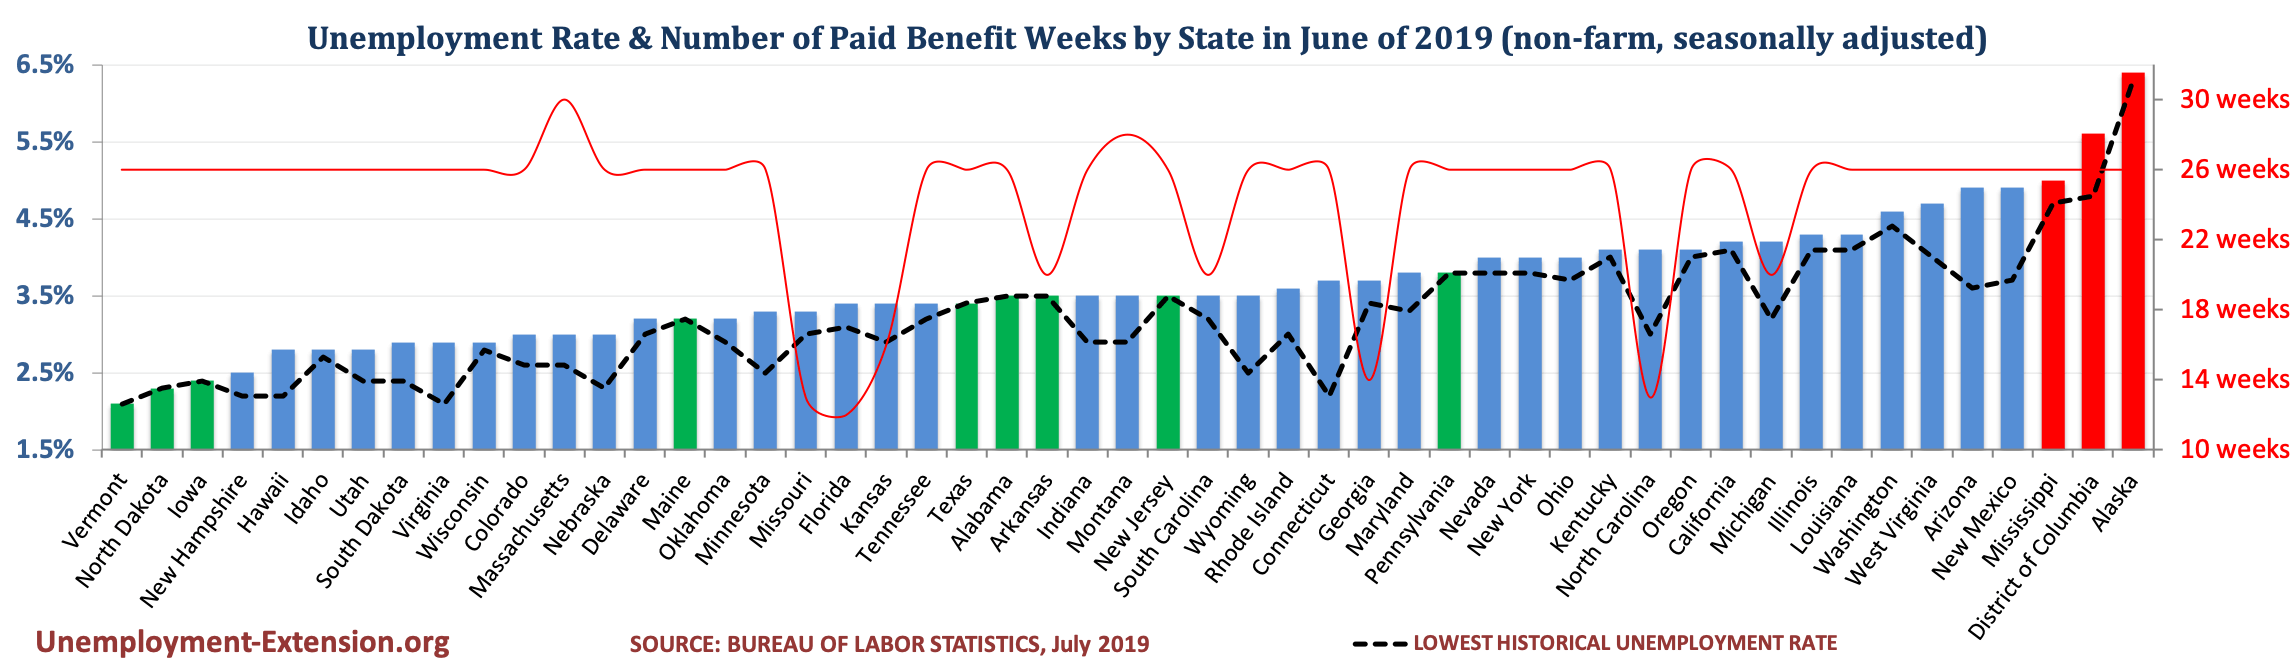 Unemployment Rate and Number of Paid Unemployment Benefit weeks by State (non-farm, seasonally adjusted) in July of 2019